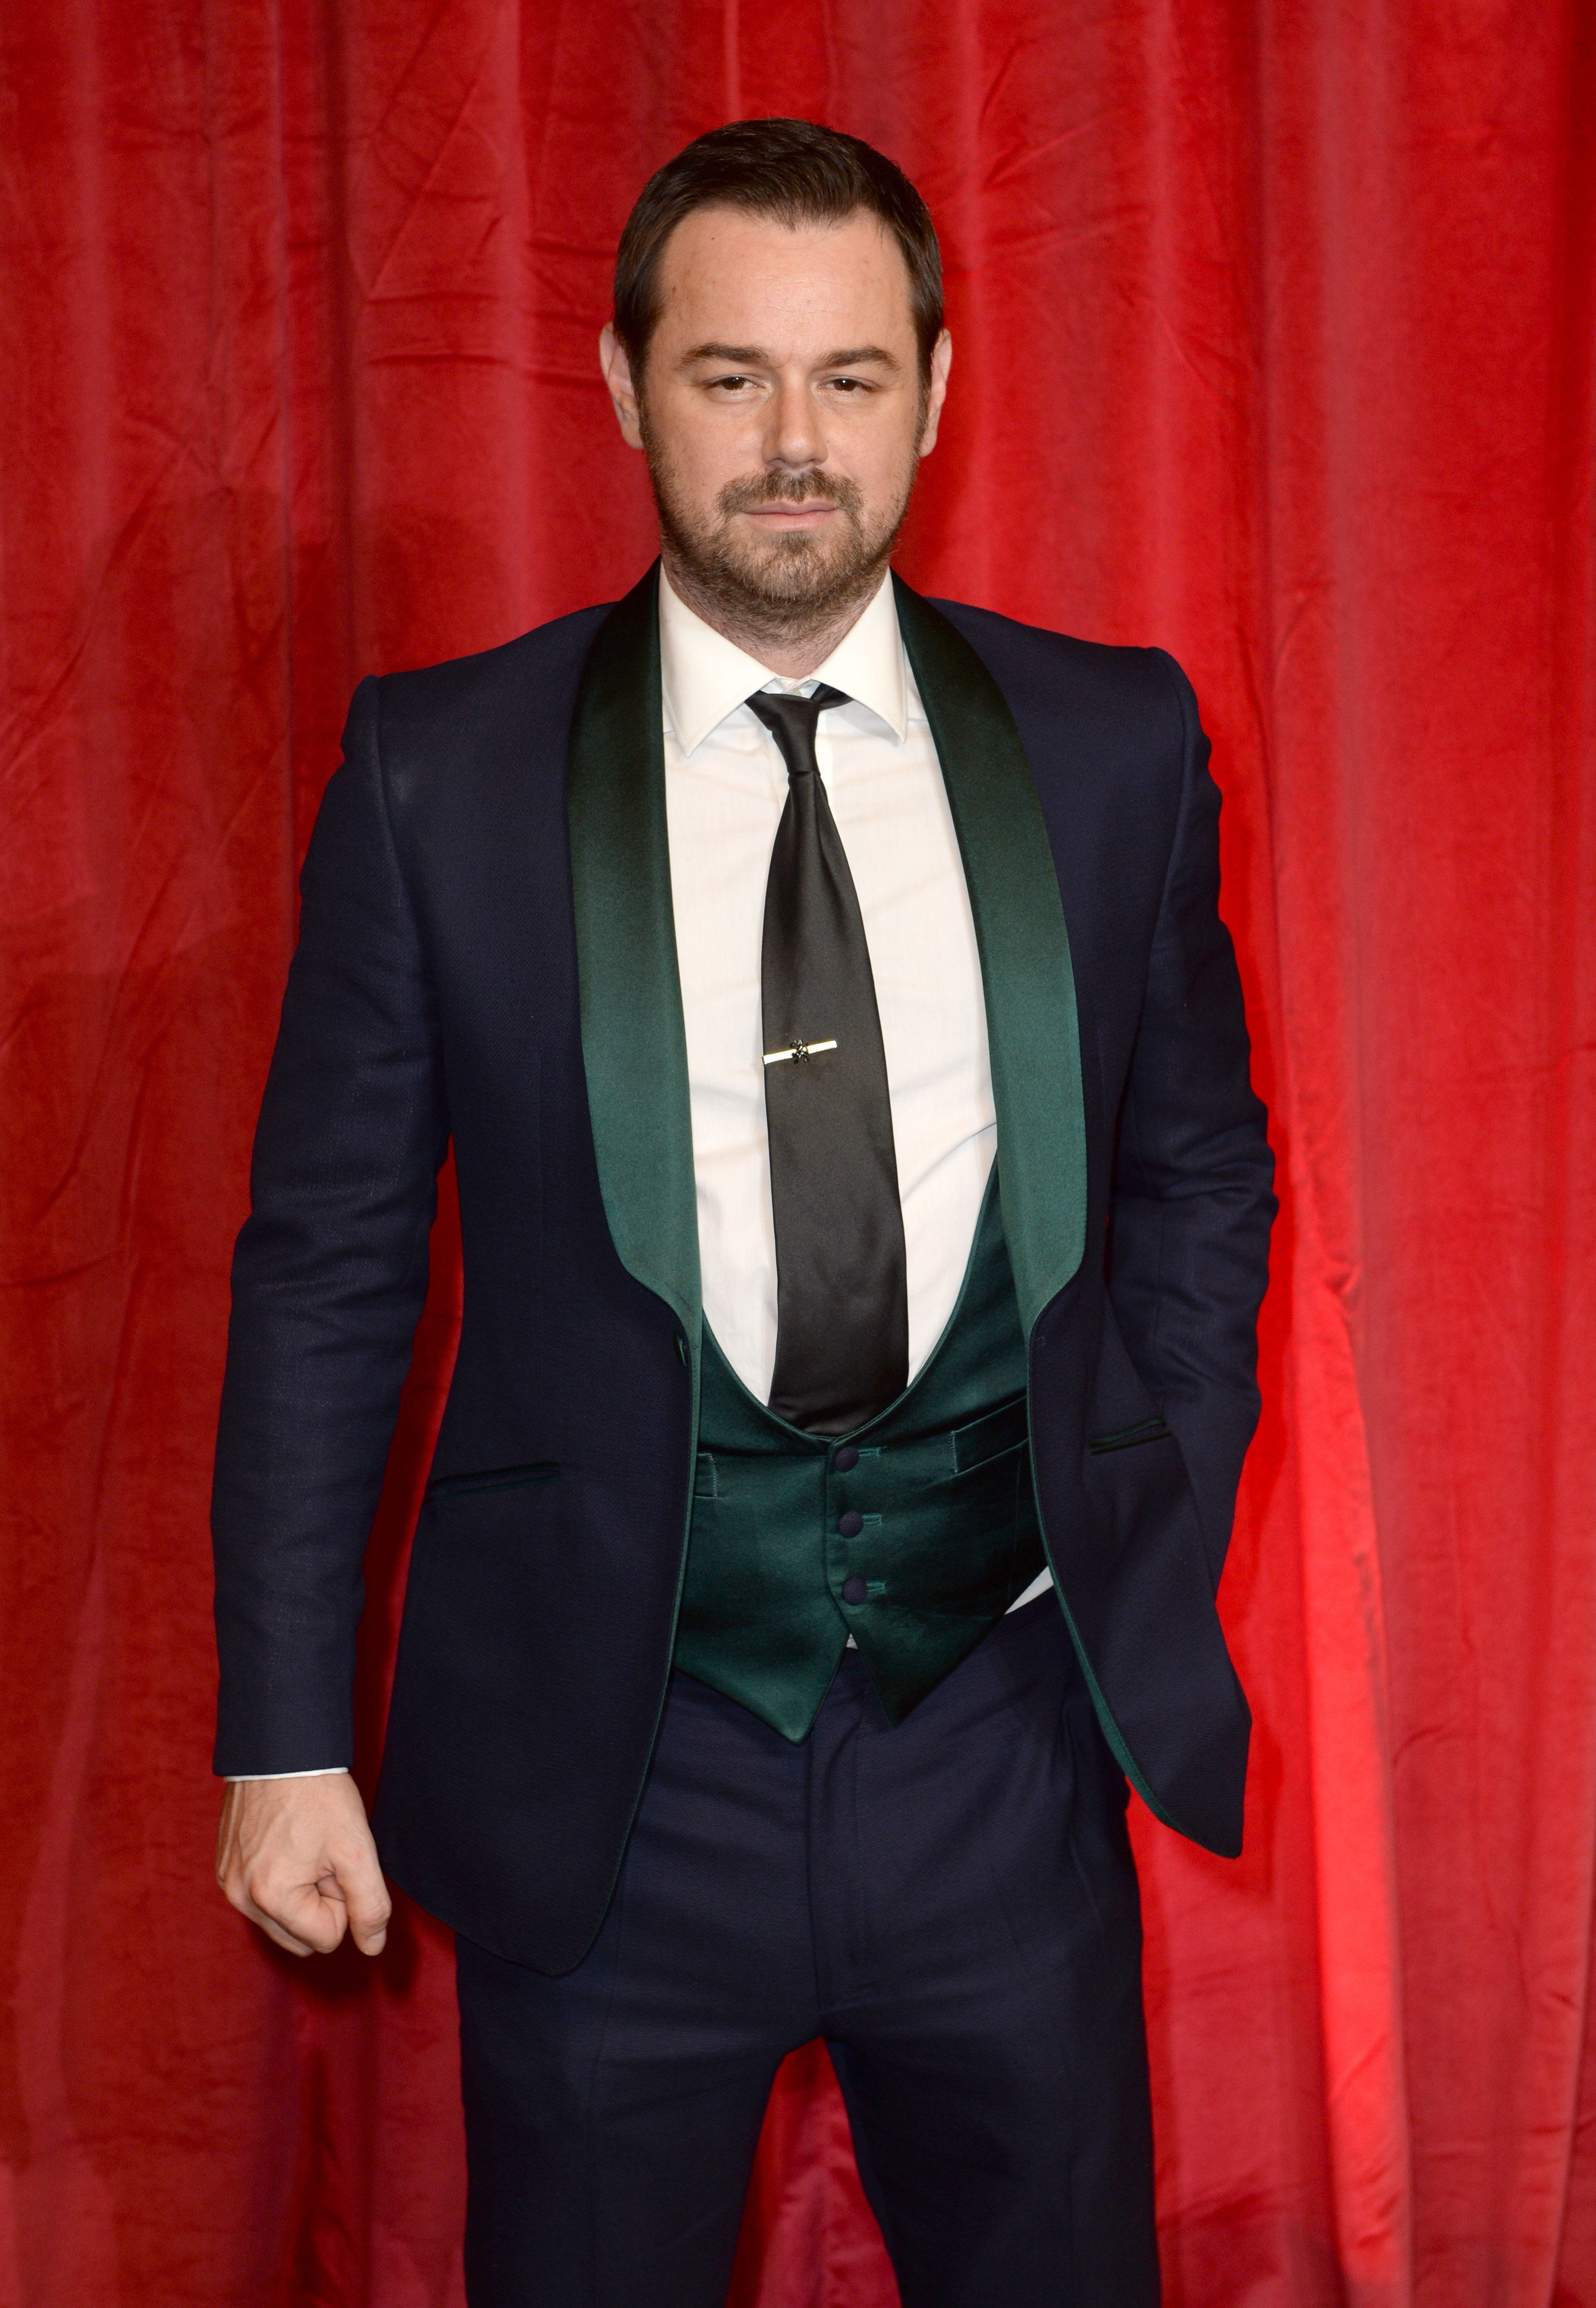 Danny Dyer is not leaving 'EastEnders', according to soap